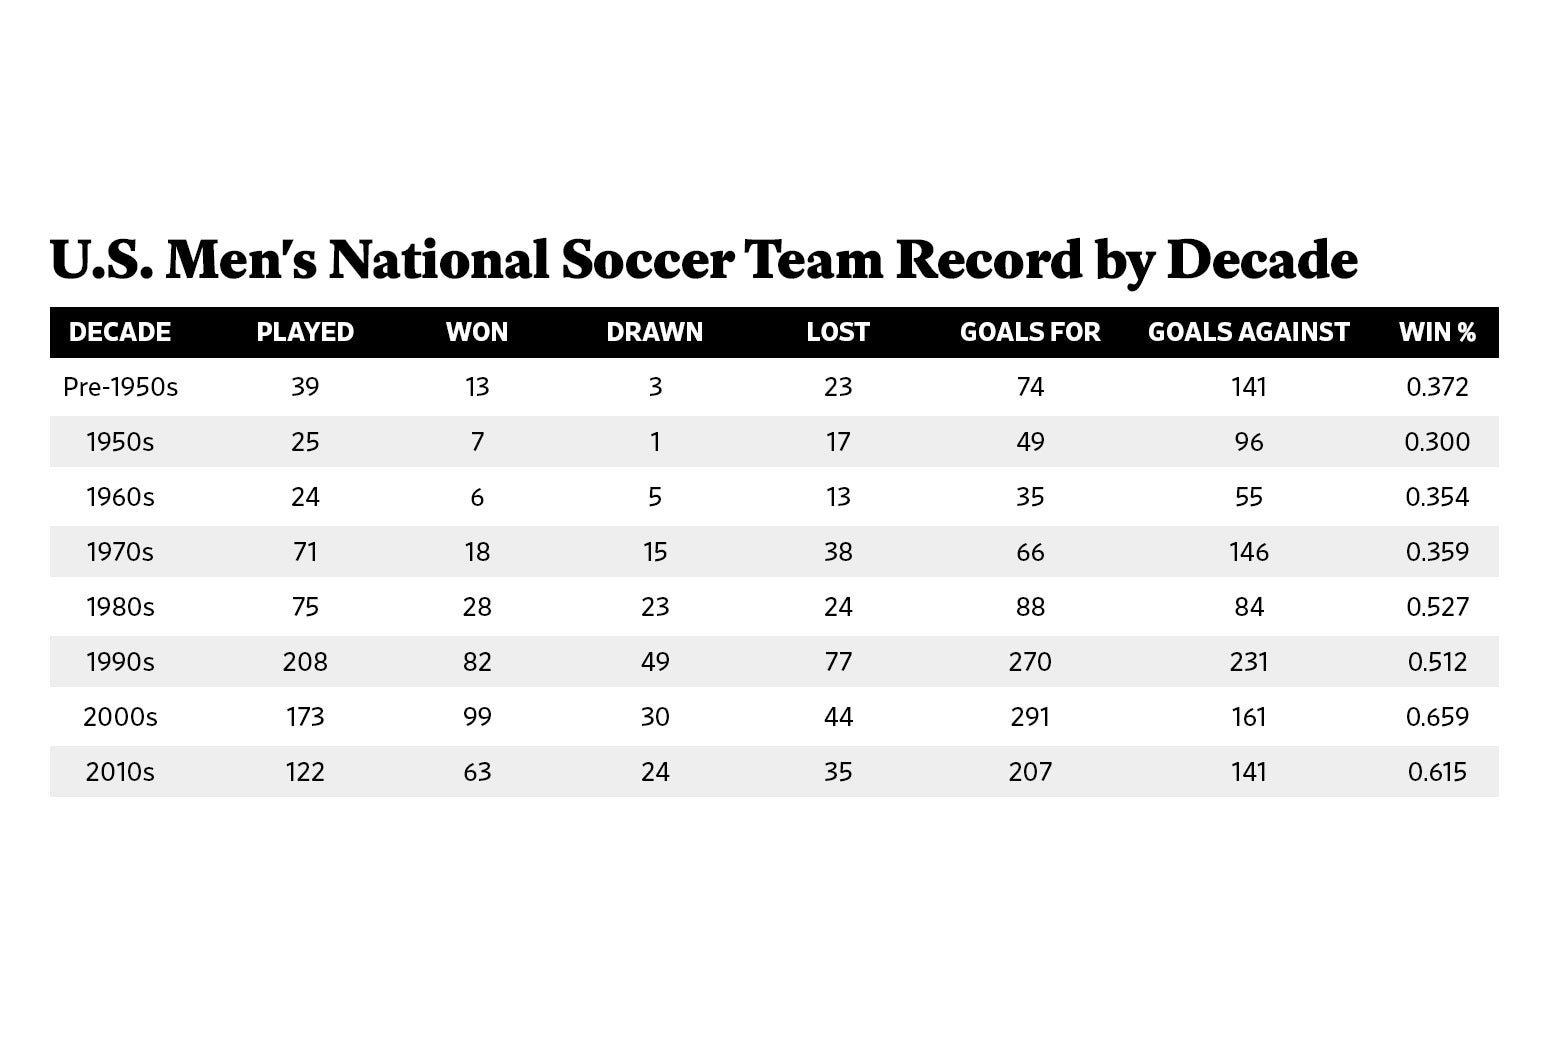 Chart: U.S. Men's National Soccer Team Record by Decade